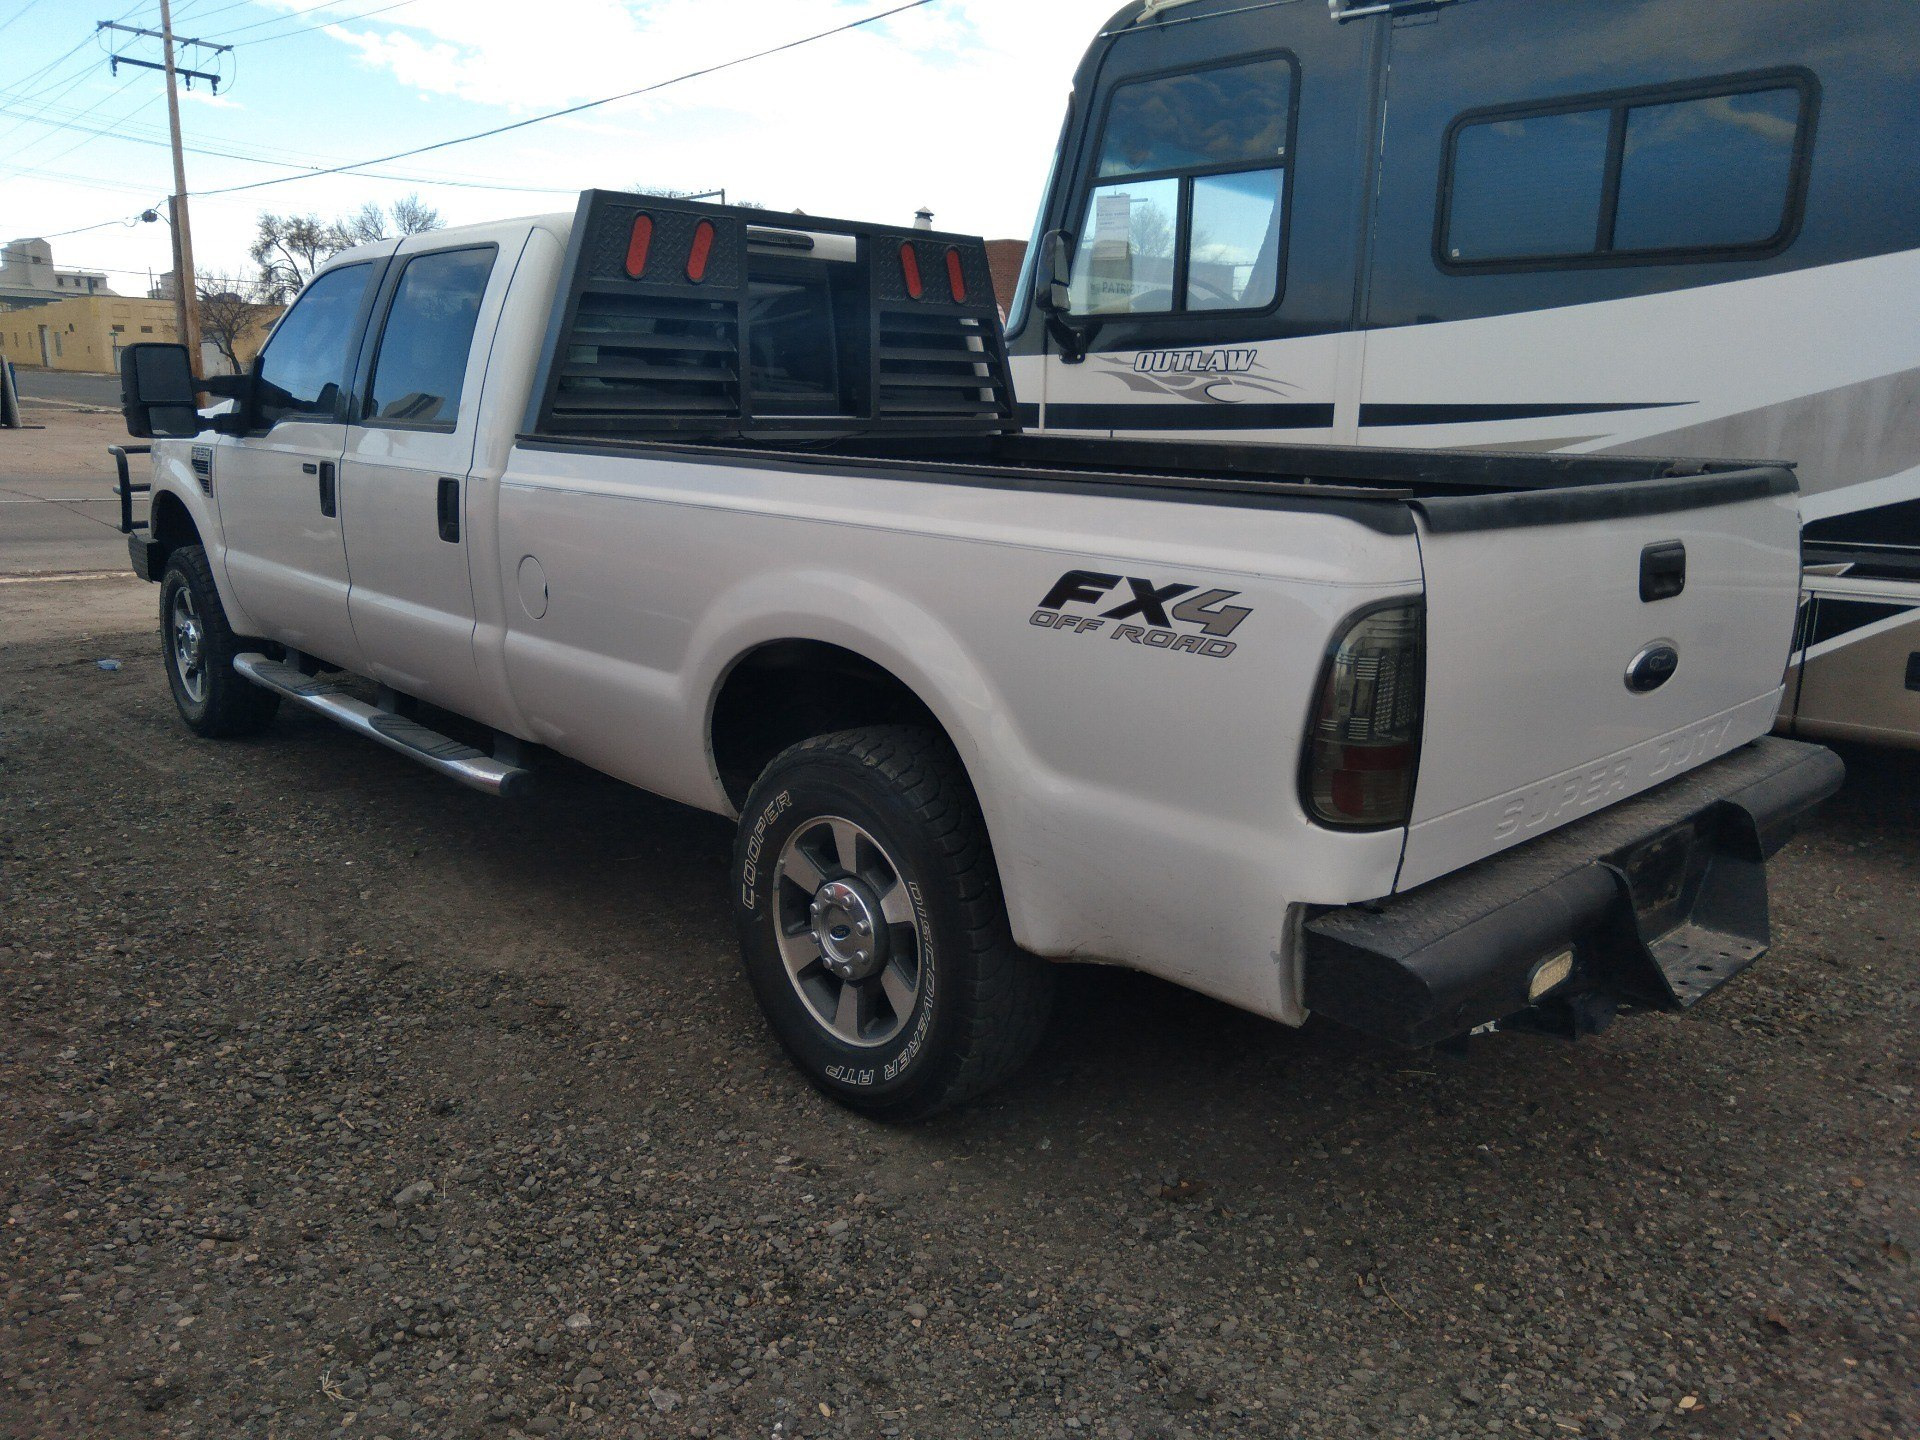 2010 Ford F-250 SUPER DUTY XLT 4X4 in Sterling, Colorado - Photo 3